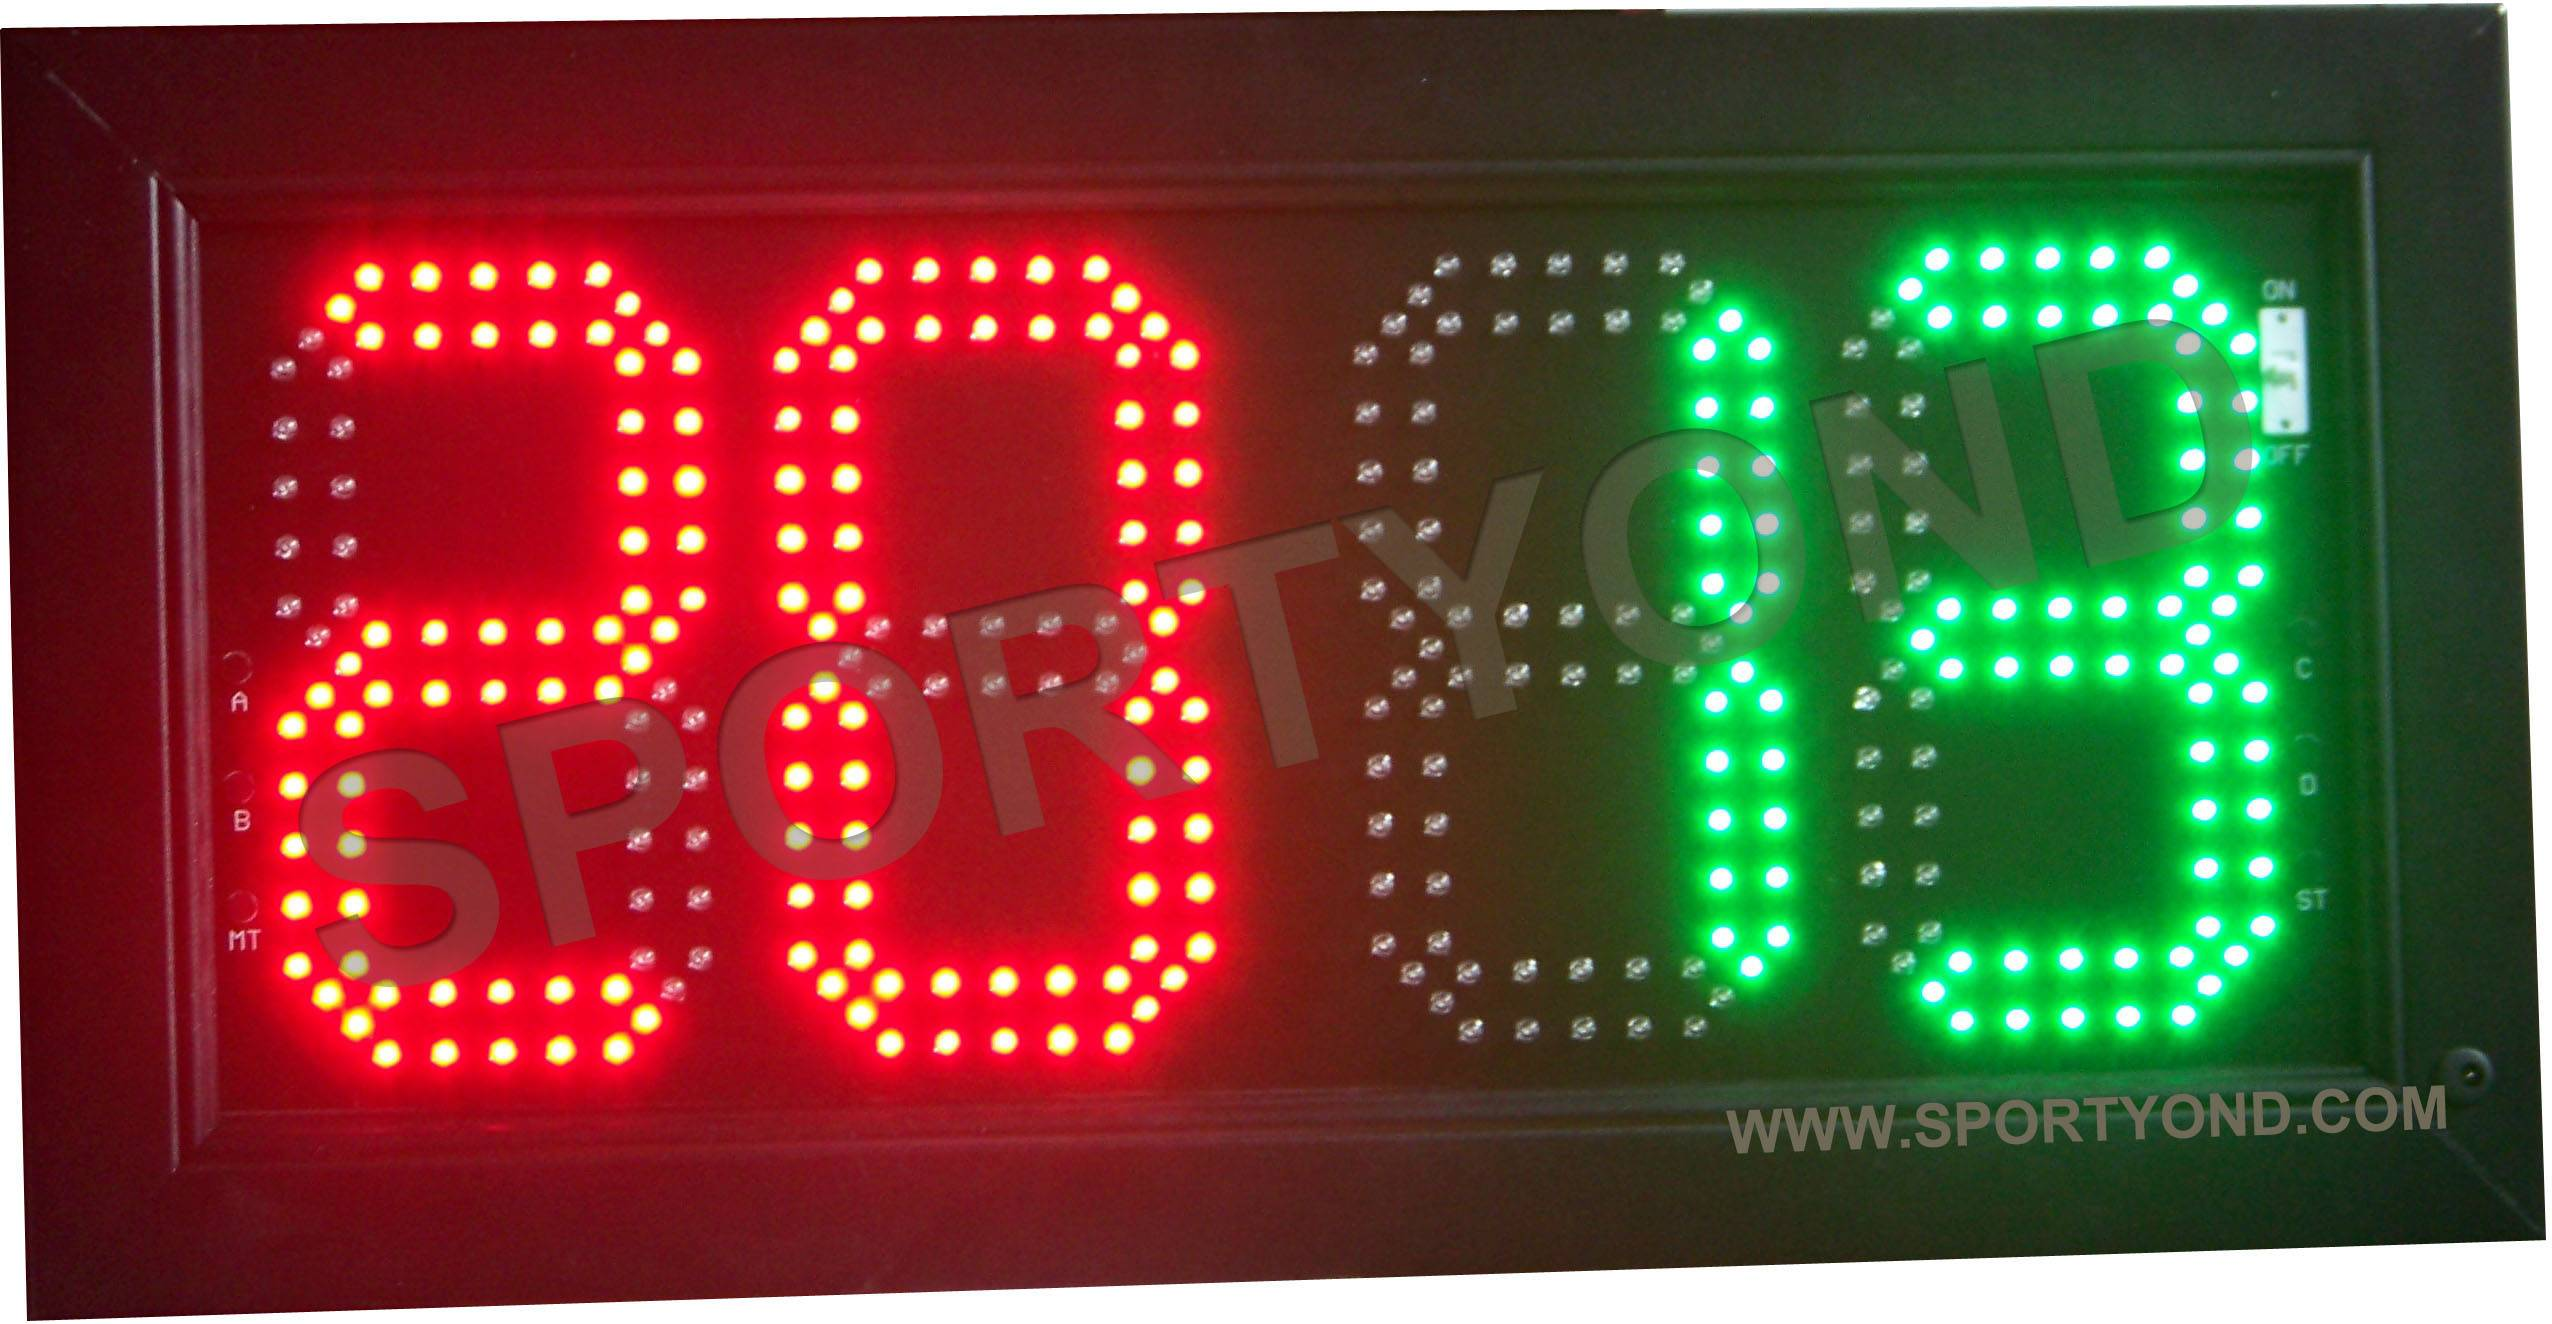 Basketball electronic substitution board